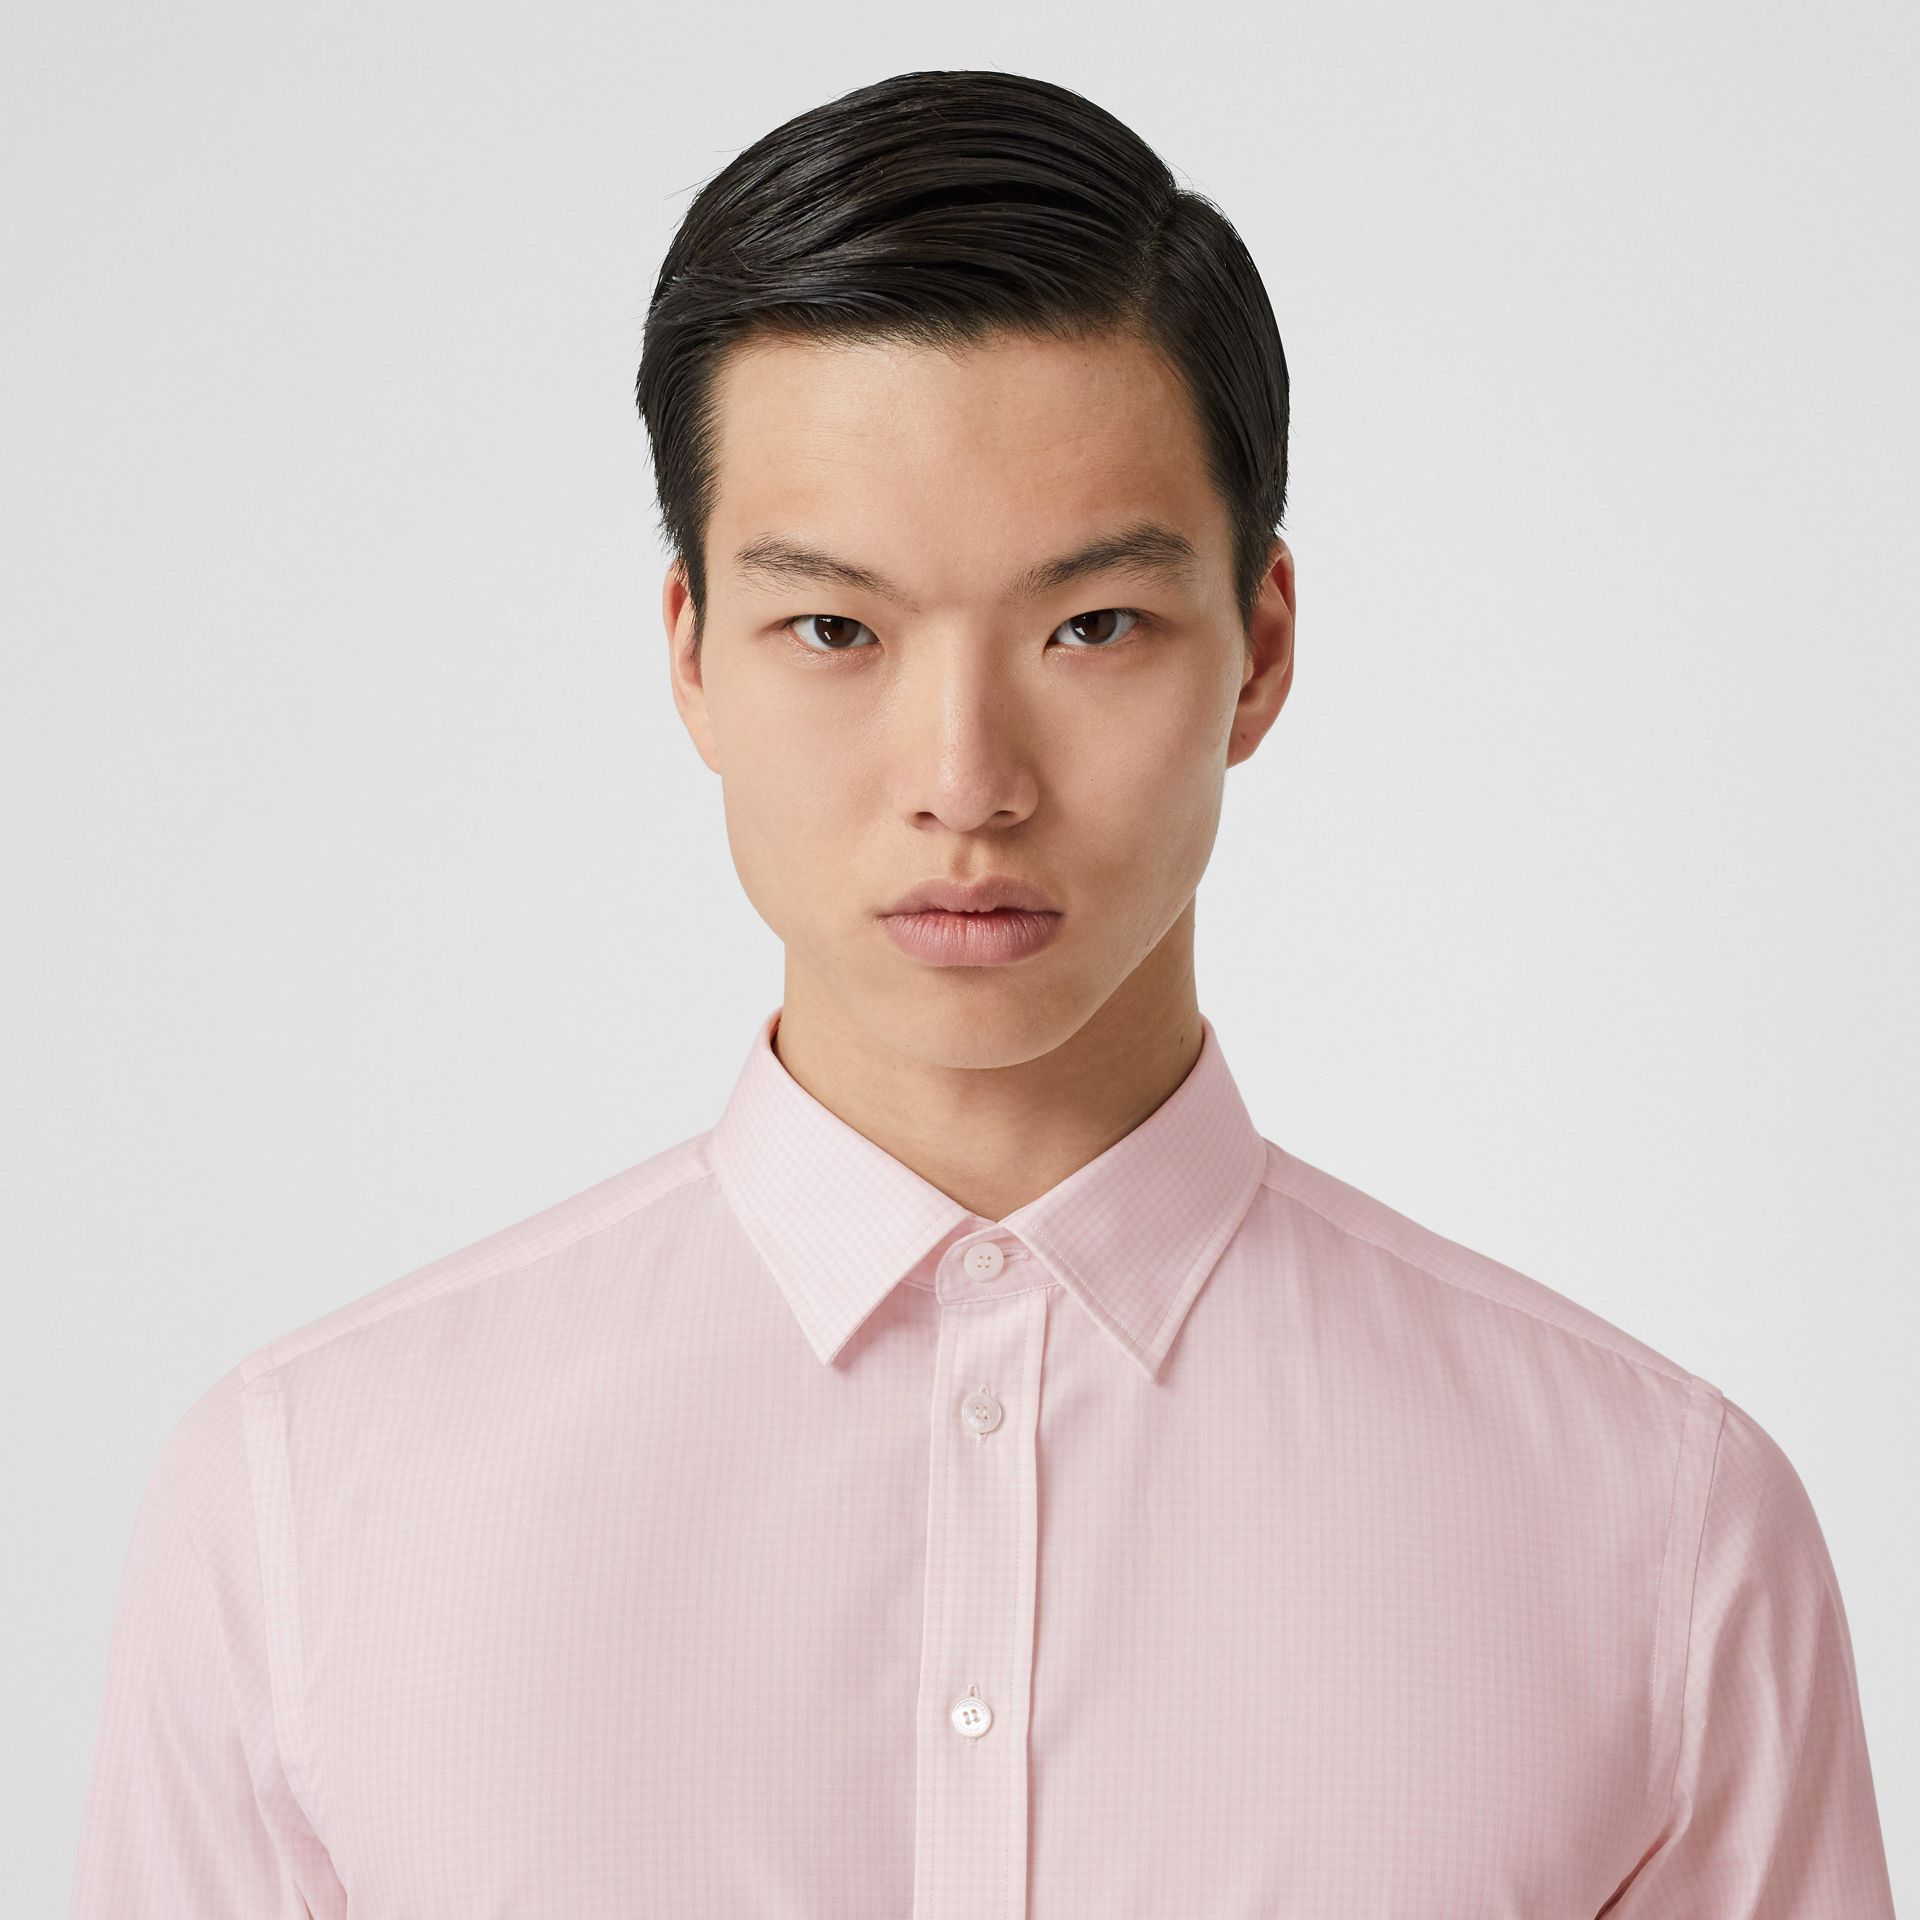 Slim Fit Micro Check Cotton Poplin Shirt in Alabaster Pink - Men | Burberry Singapore - gallery image 1